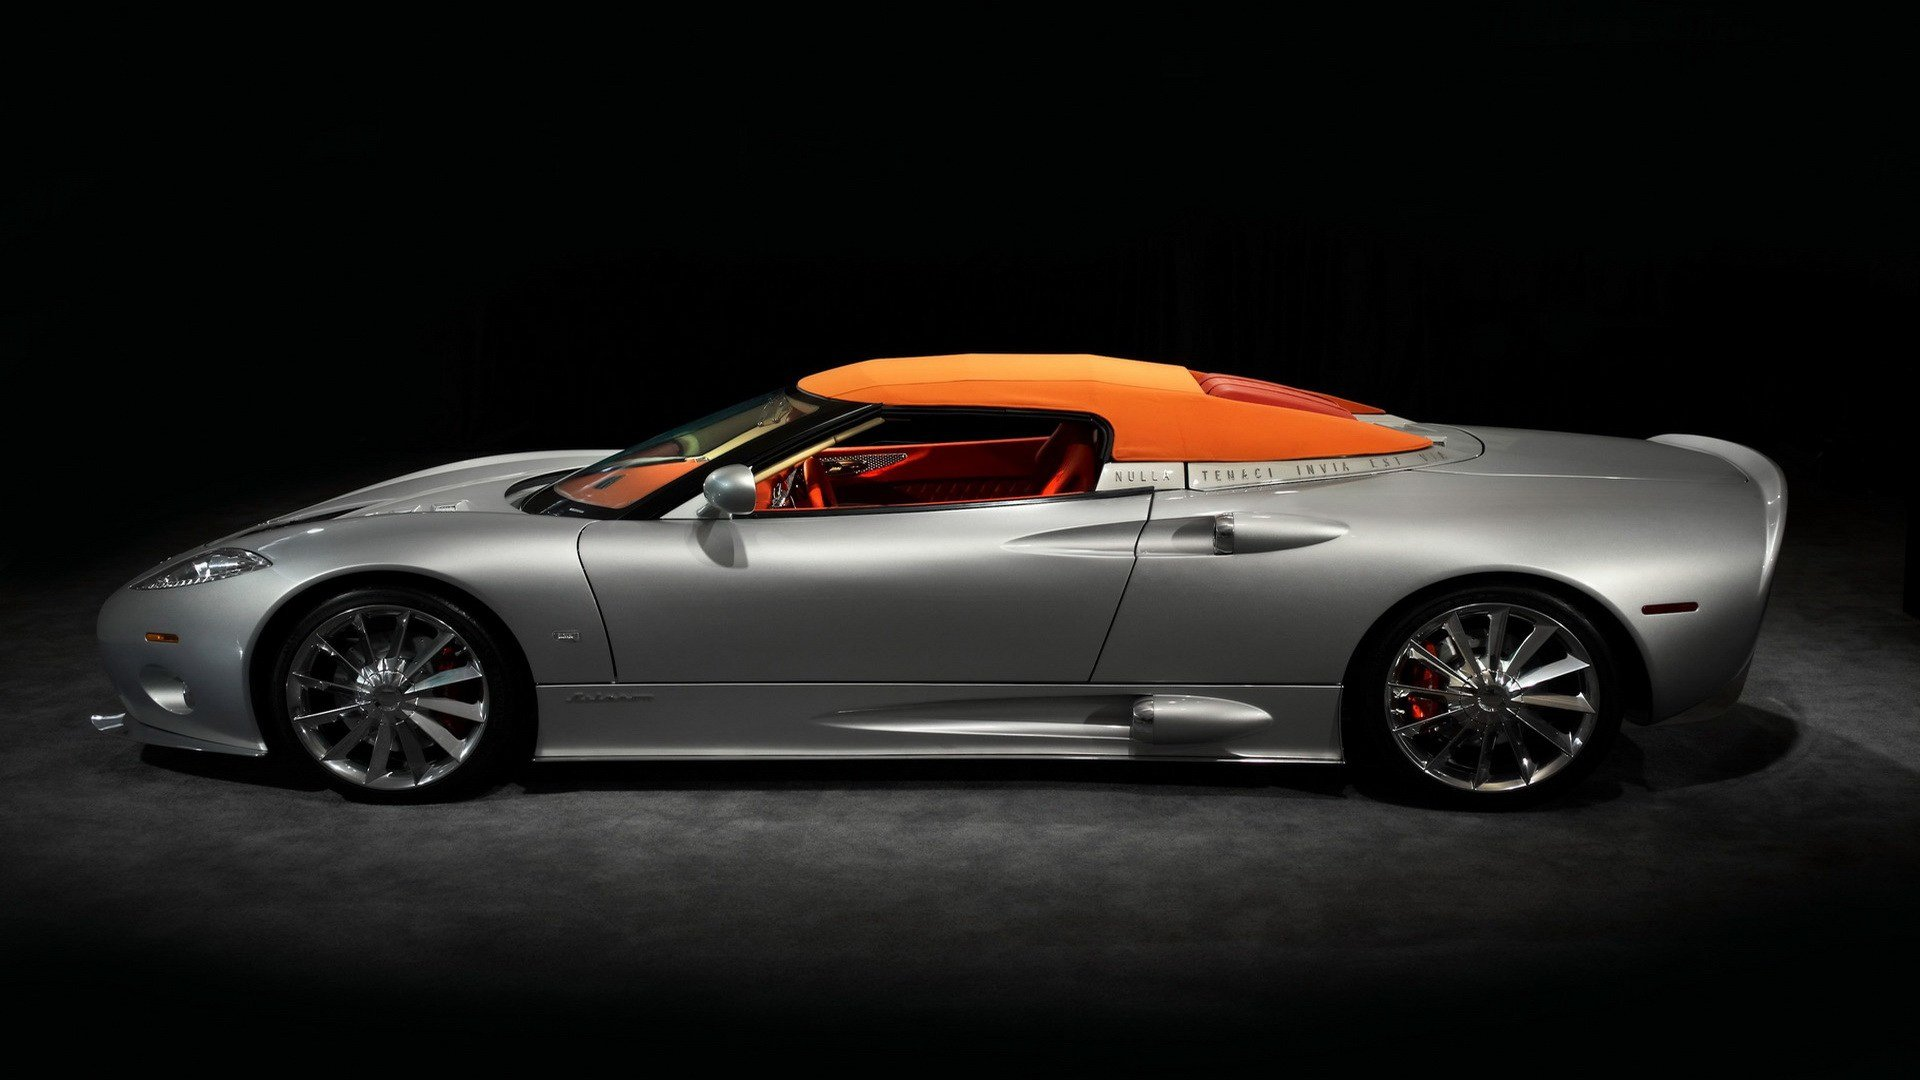 Latest Ford Gt90 Car Wallpapers 2 Spyker C8 Aileron Car Free Download